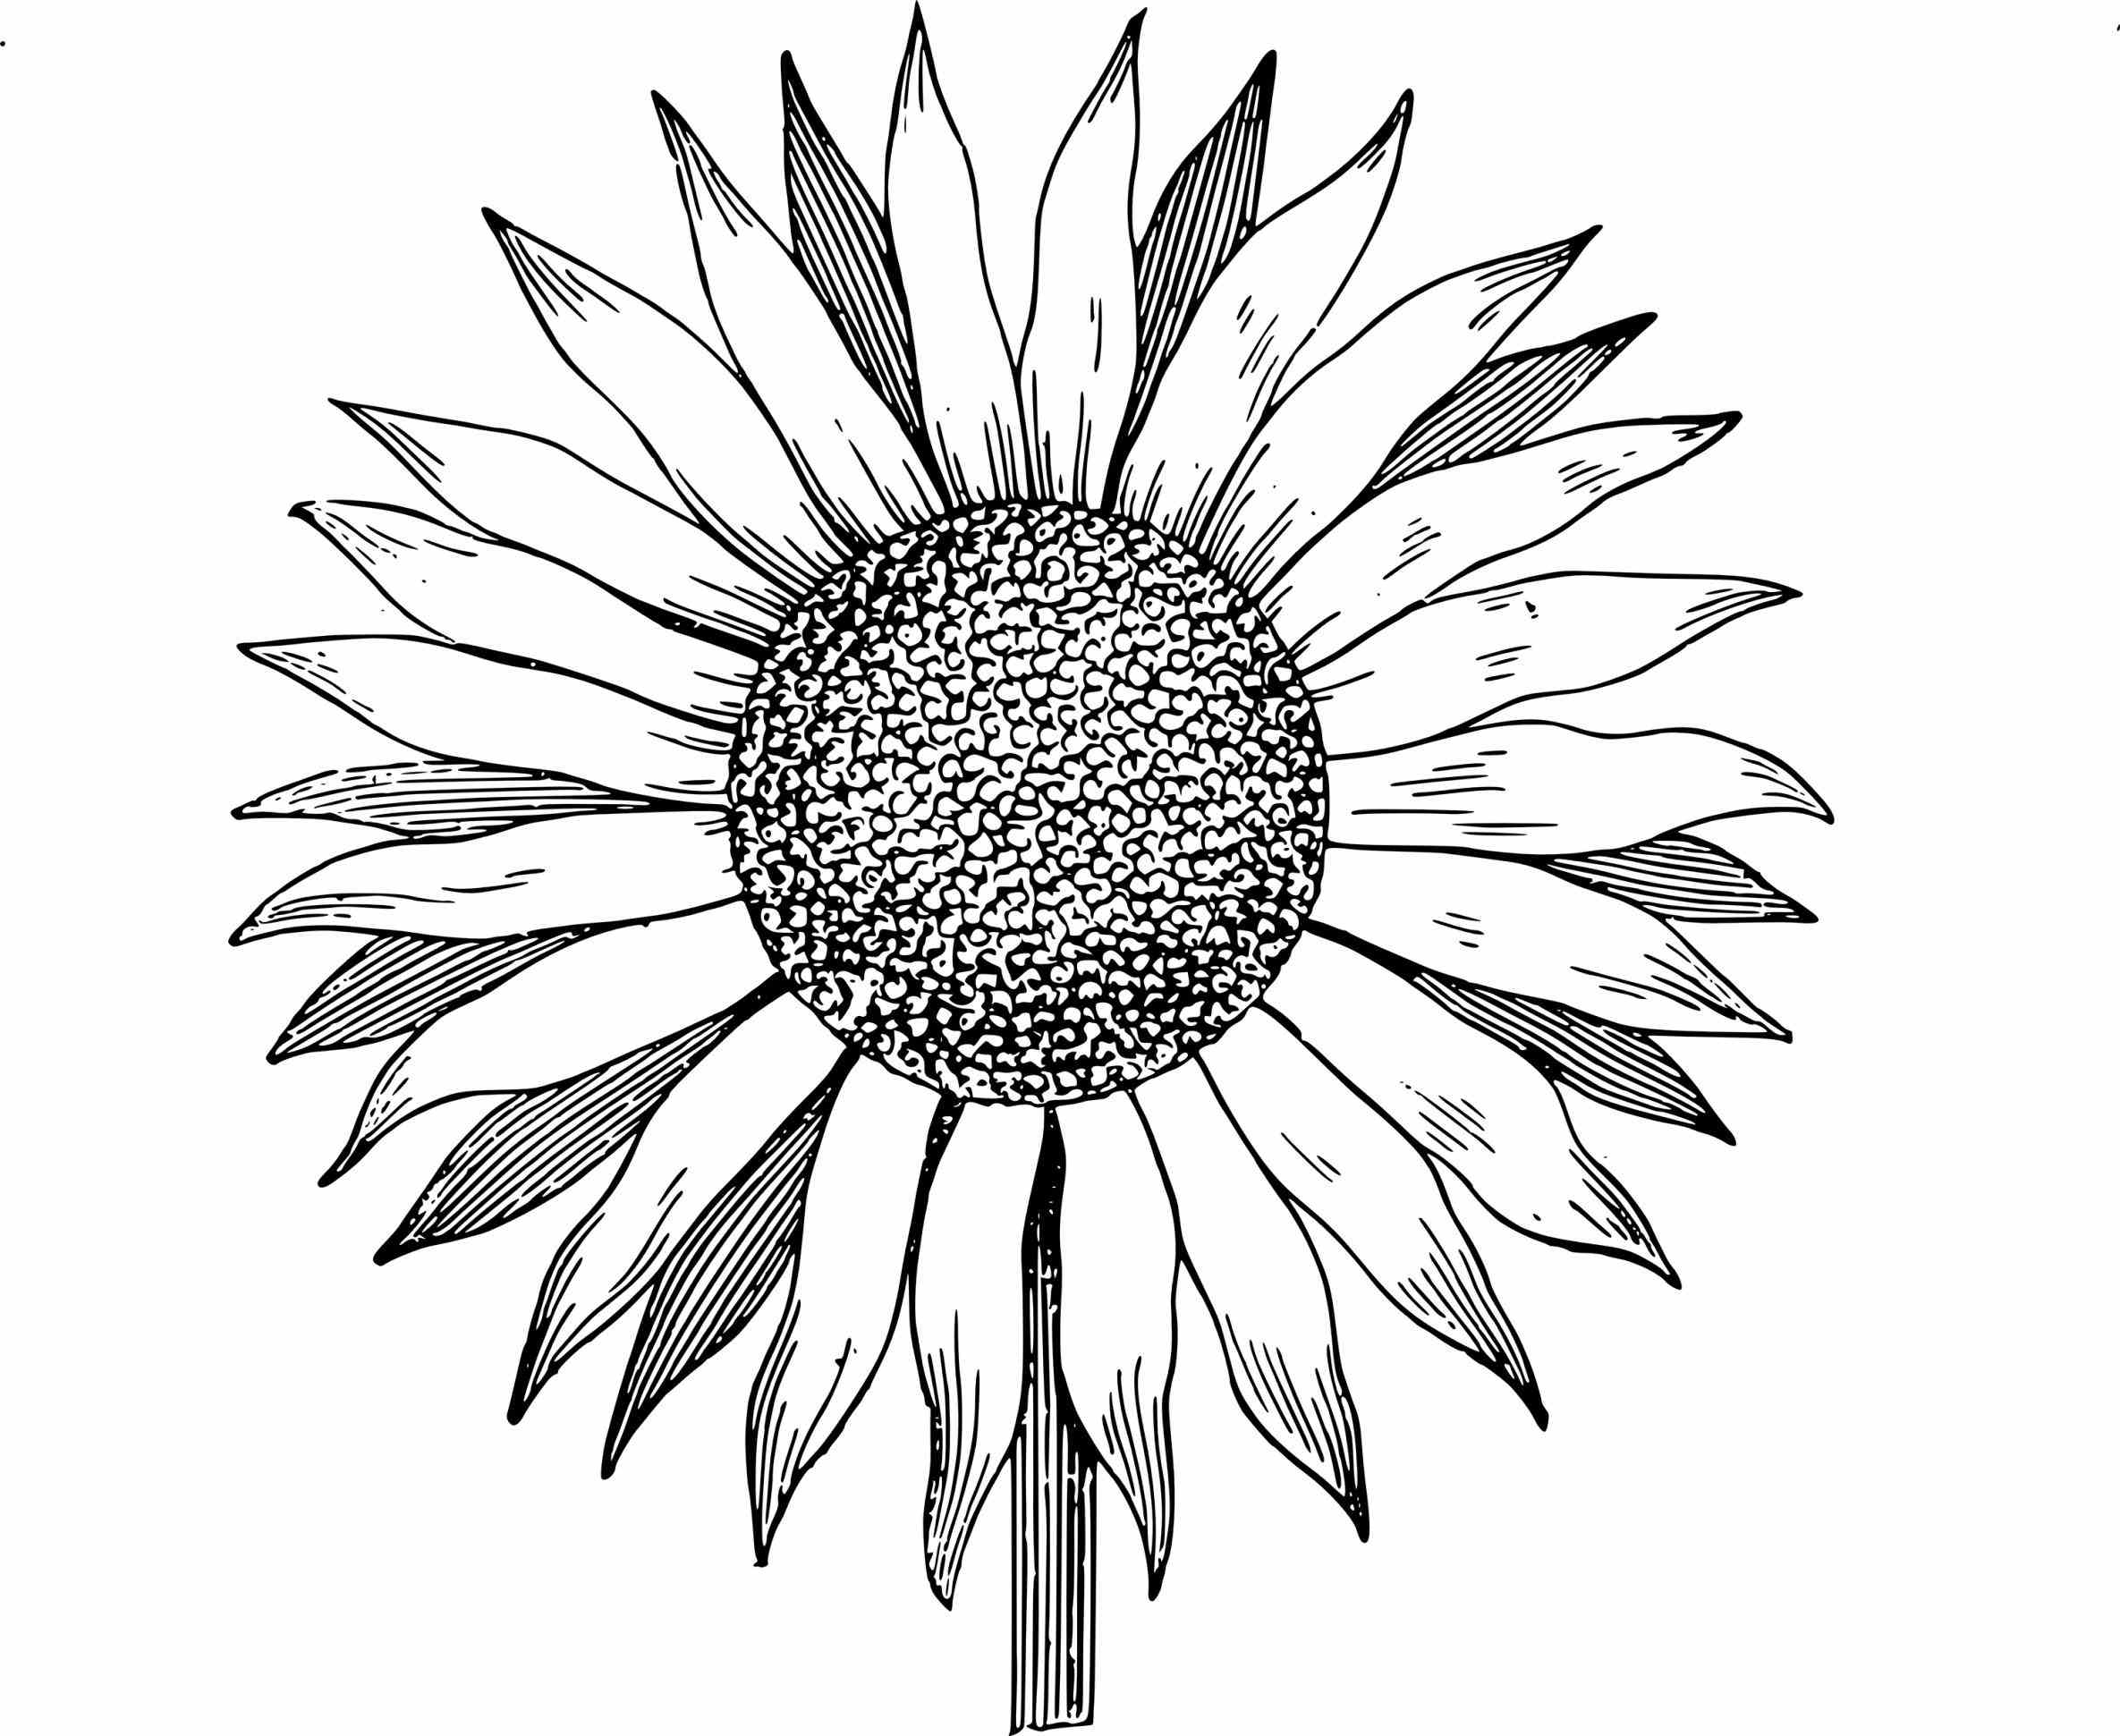 2370x1941 sunflower drawing simple and sunflower drawing simple sunflower